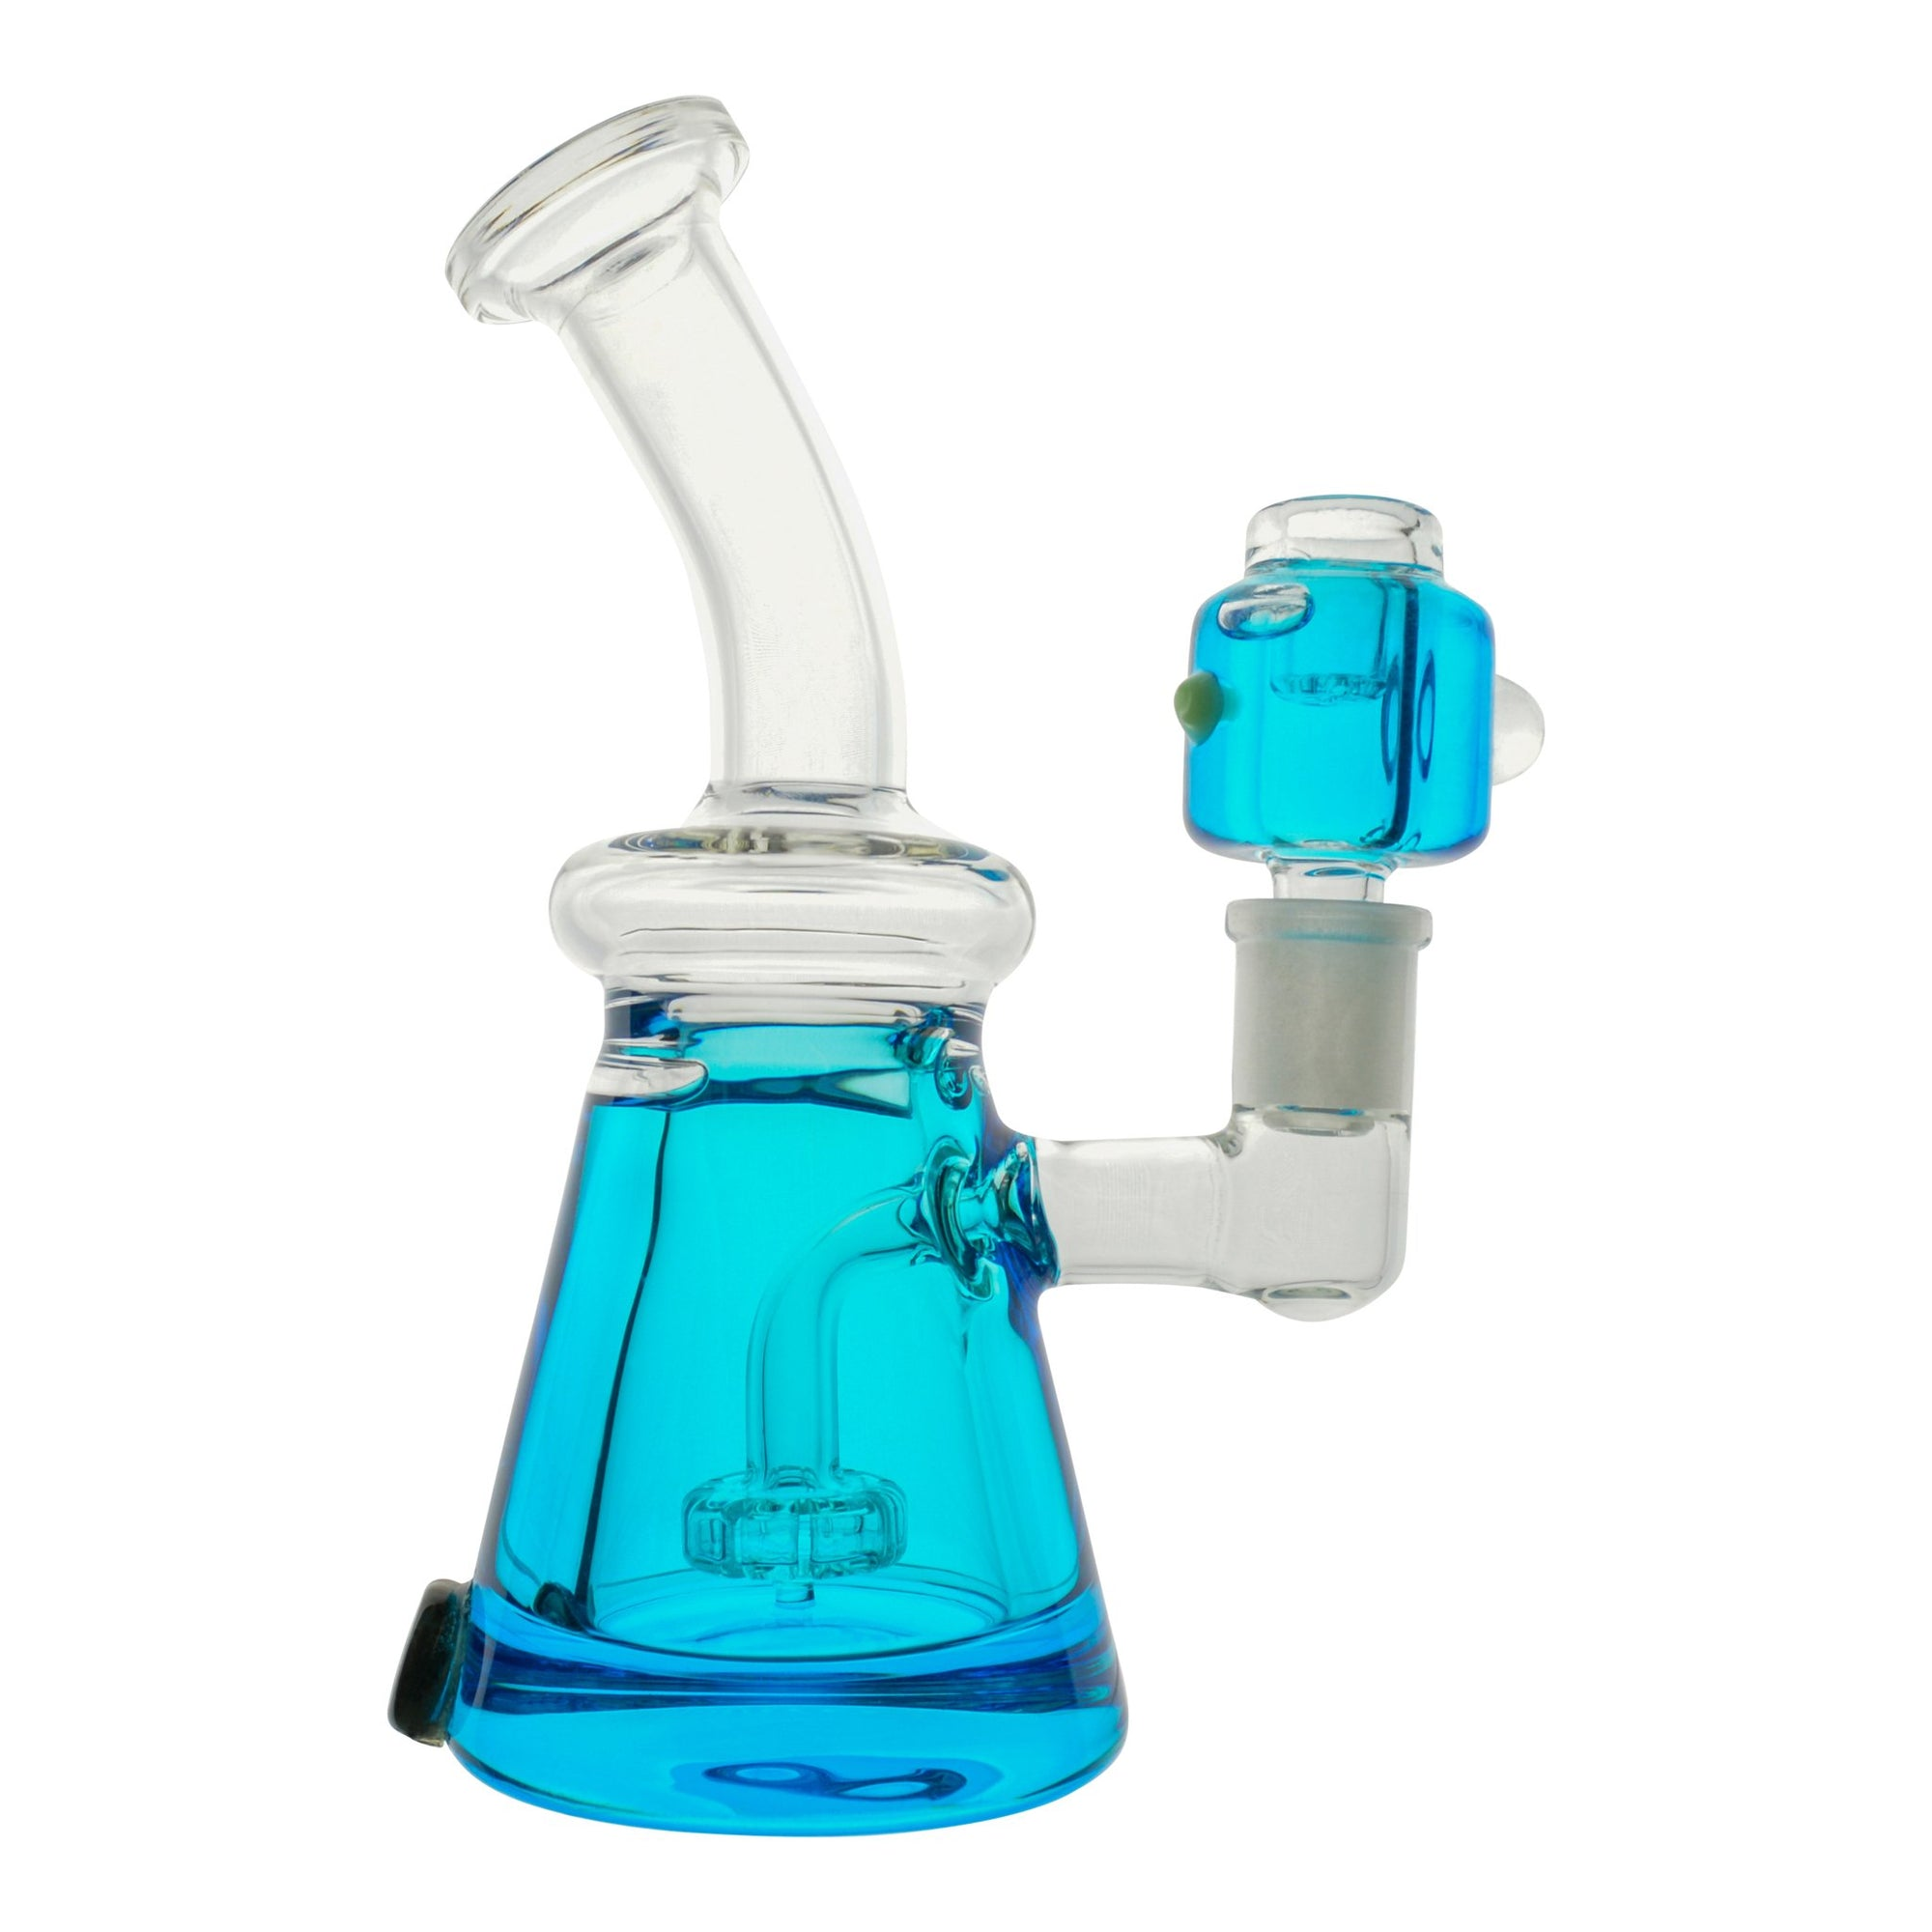 Cute 7 inch glass beaker bong neon blue with glycerine chamber bent neck mouthpiece on left blue bowl with glycerine on right